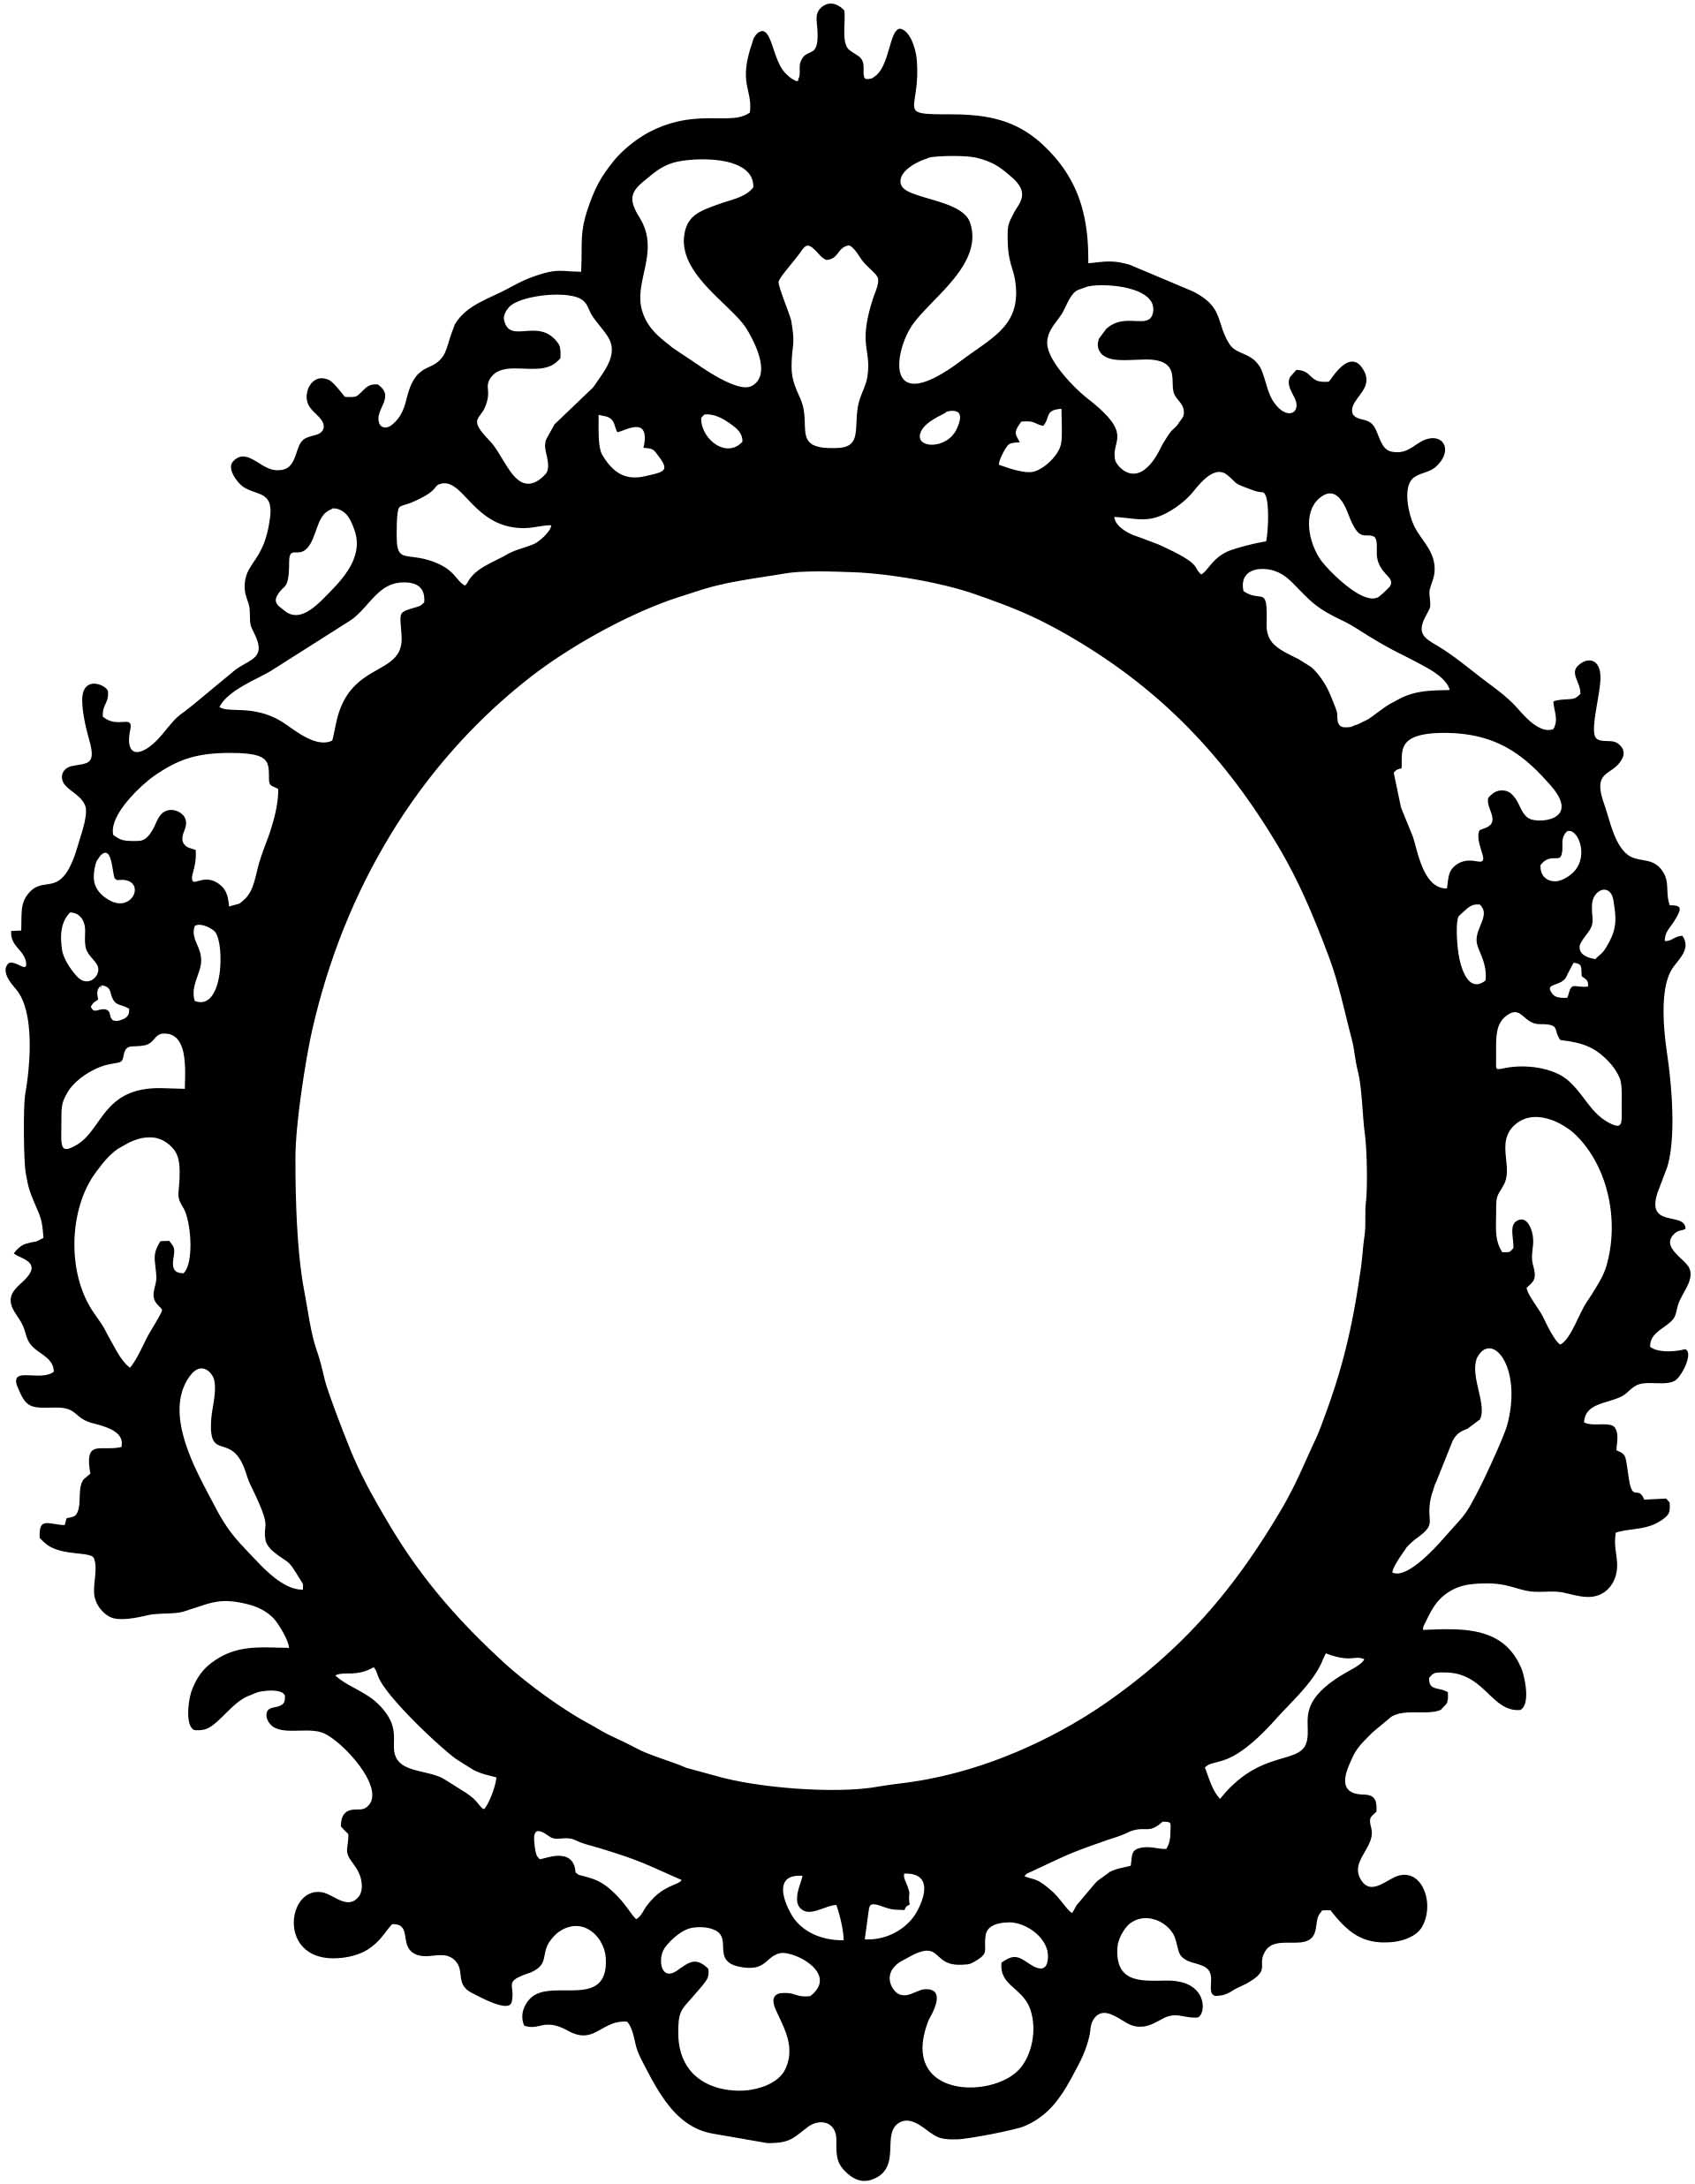 Free Oval Frame Cliparts, Download Free Clip Art, Free Clip Art on.